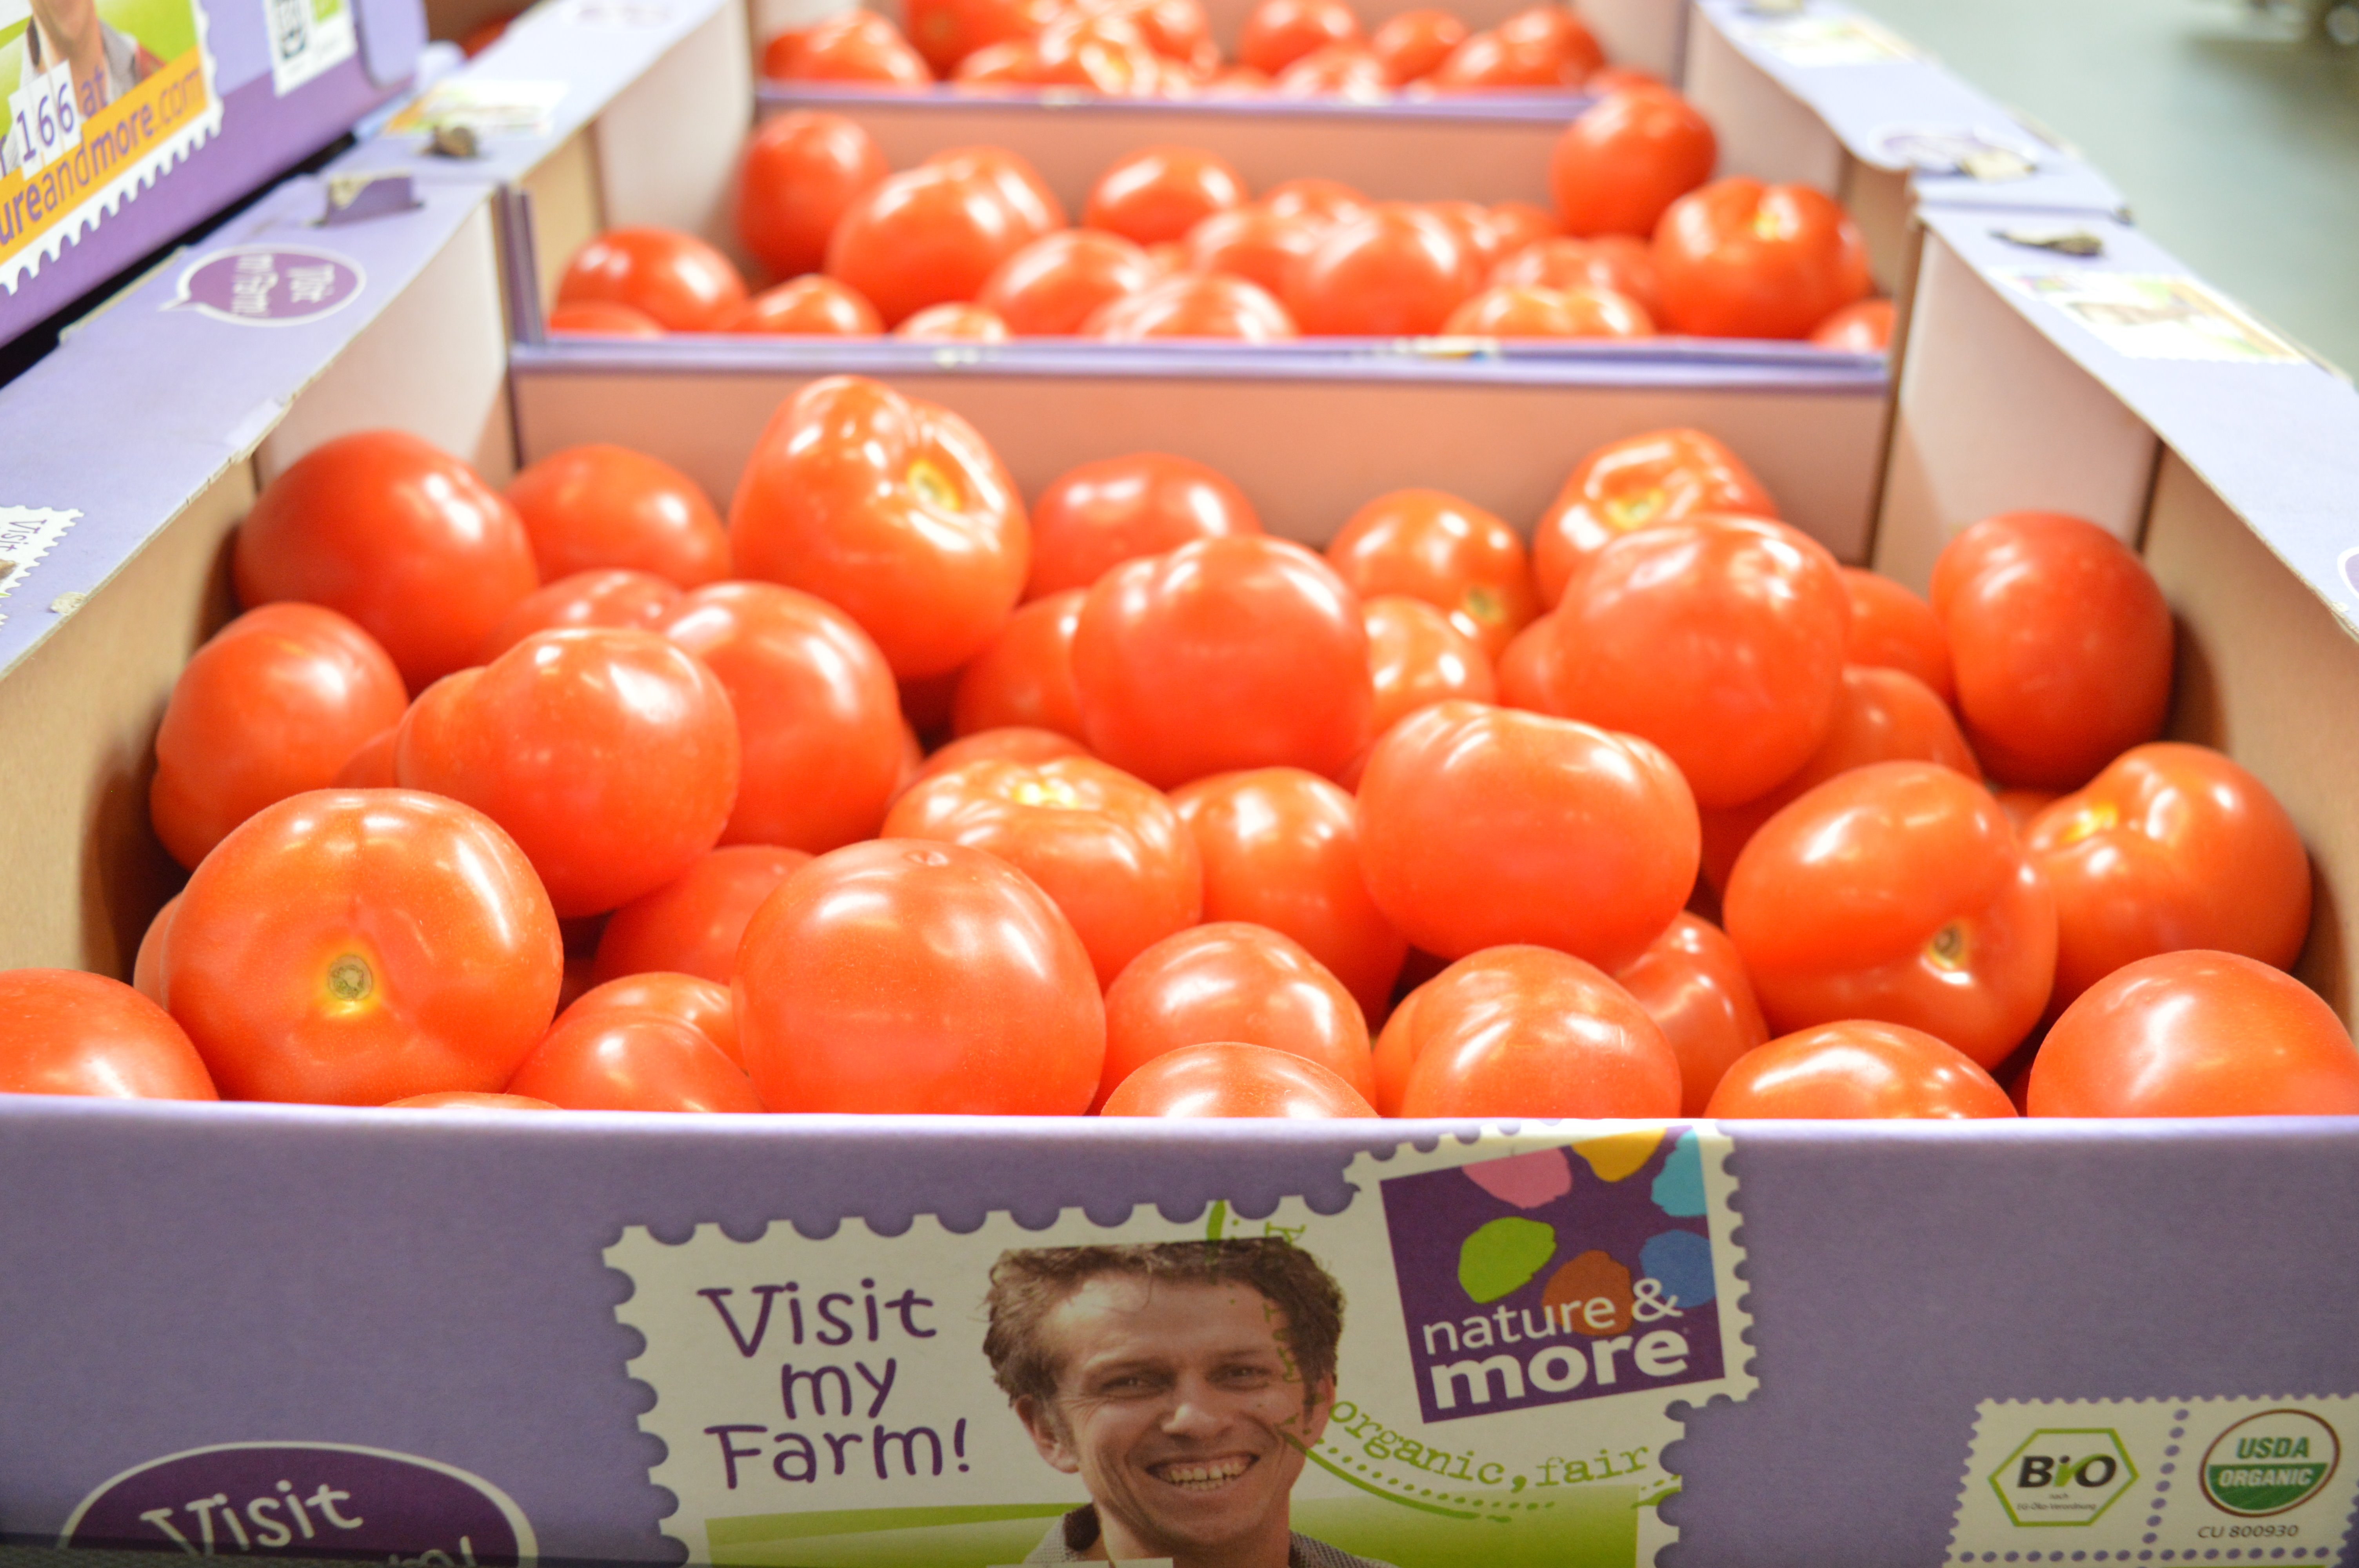 Eosta: Partnership enables further development of SI Foodware Fresh Produce